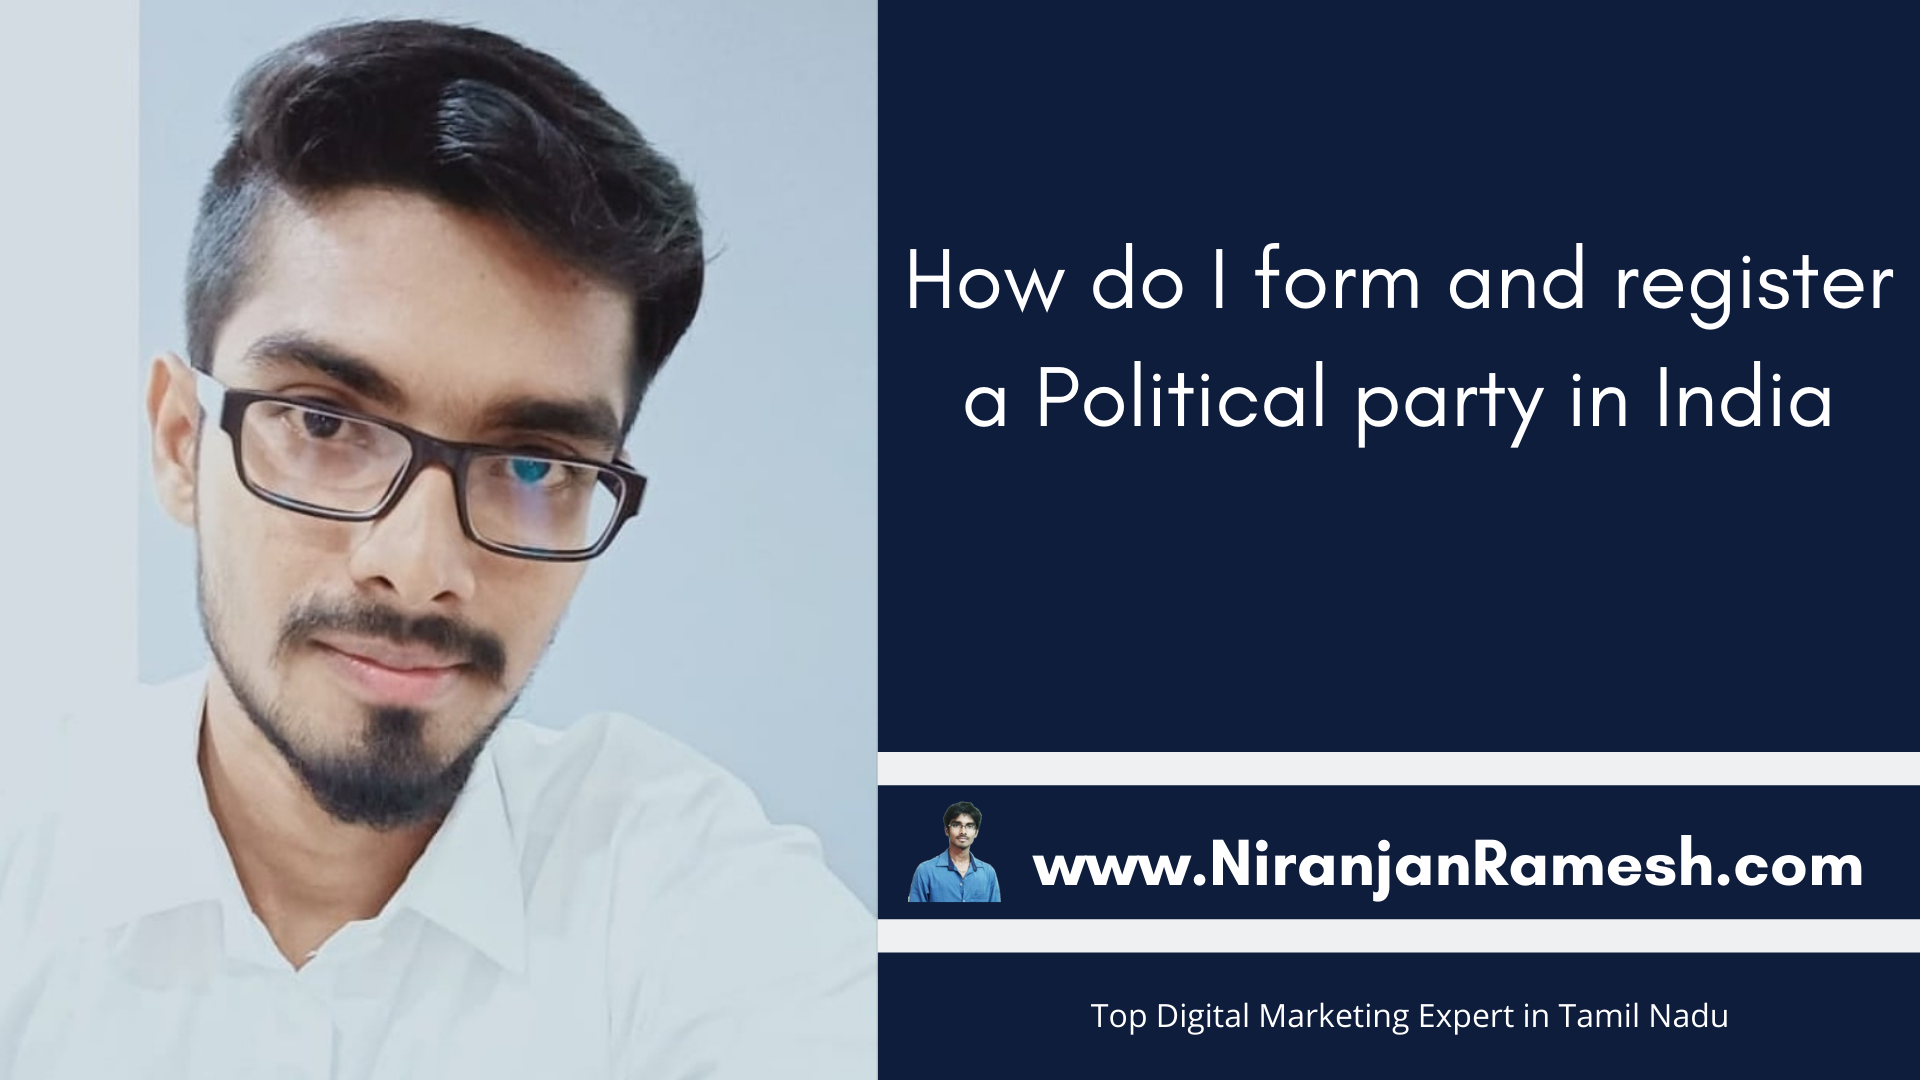 How do I form and register a Political party in India